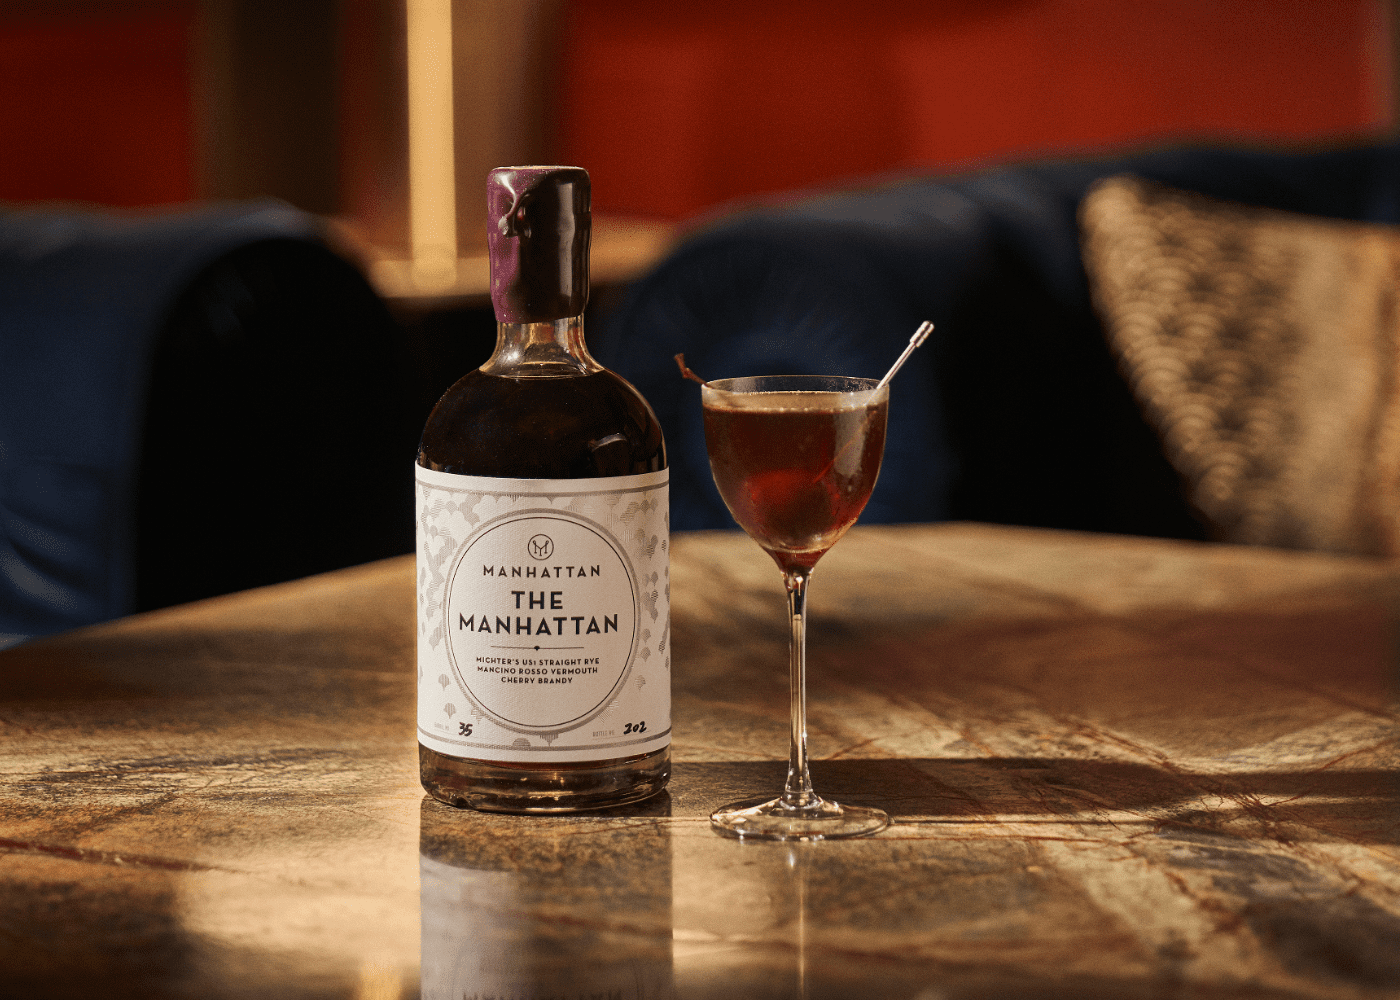 The Manhattan | takeaway cocktails in Singapore